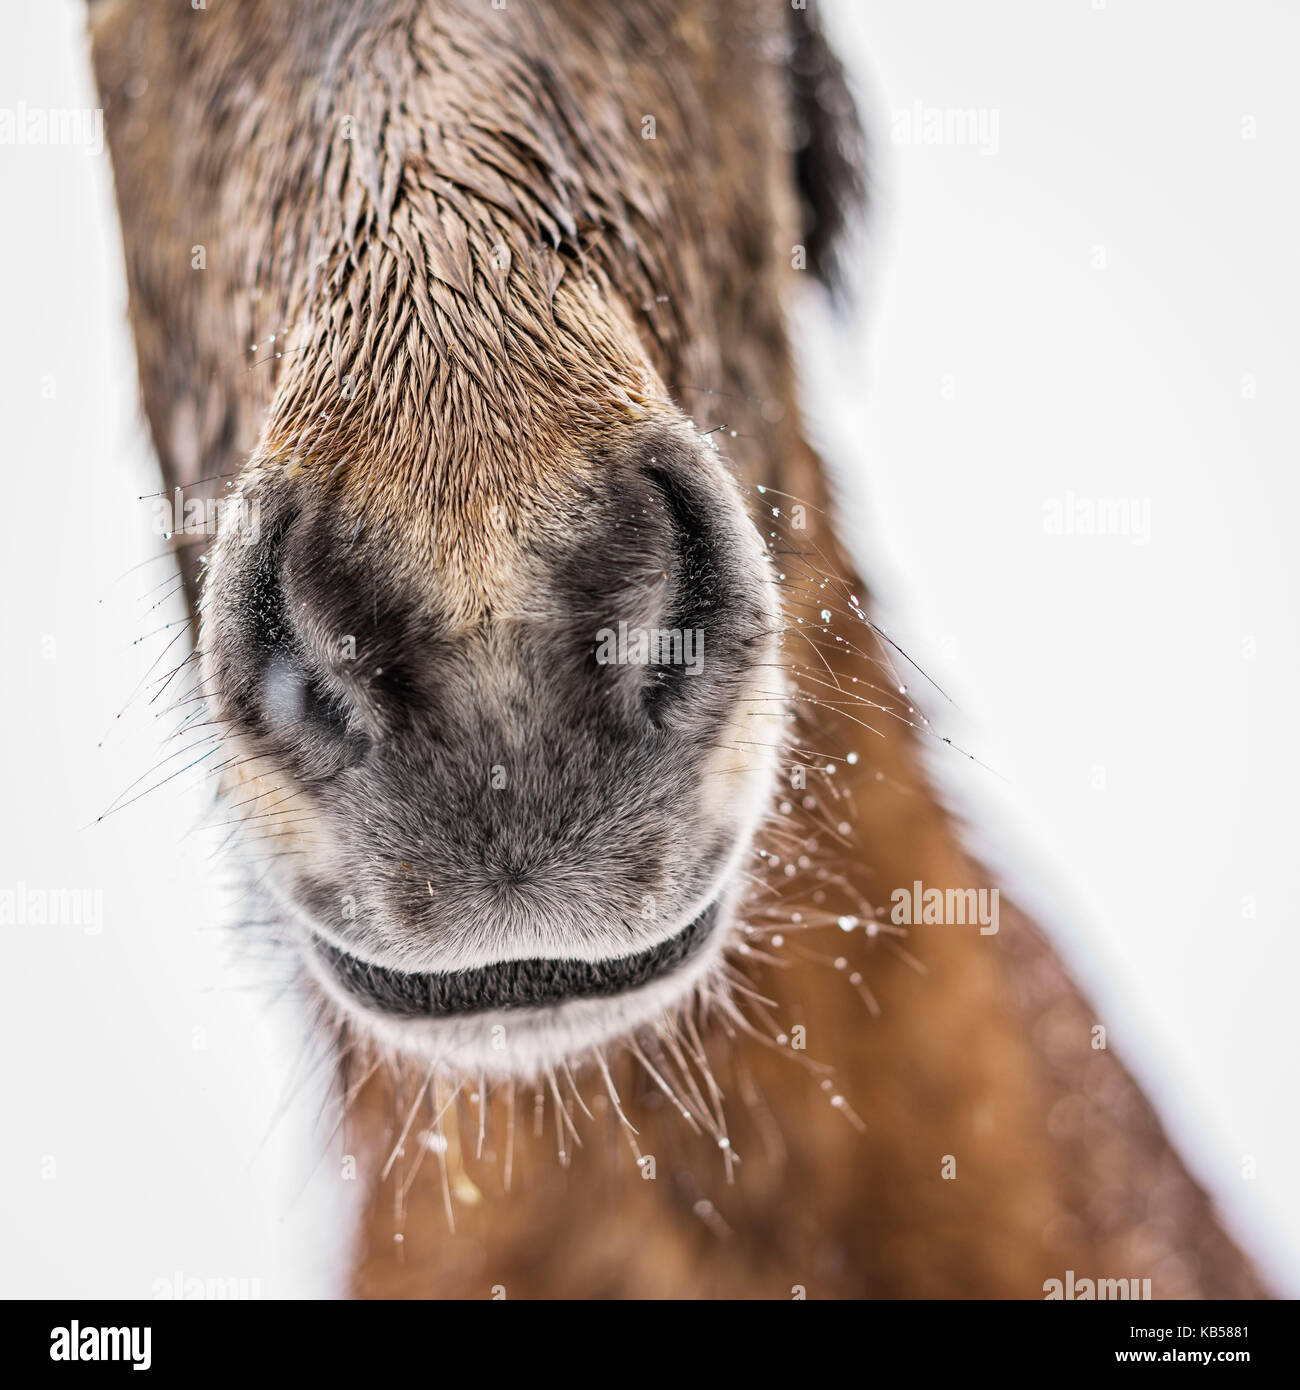 Wet Icelandic horse outside in a snowstorm, Iceland - Stock Image